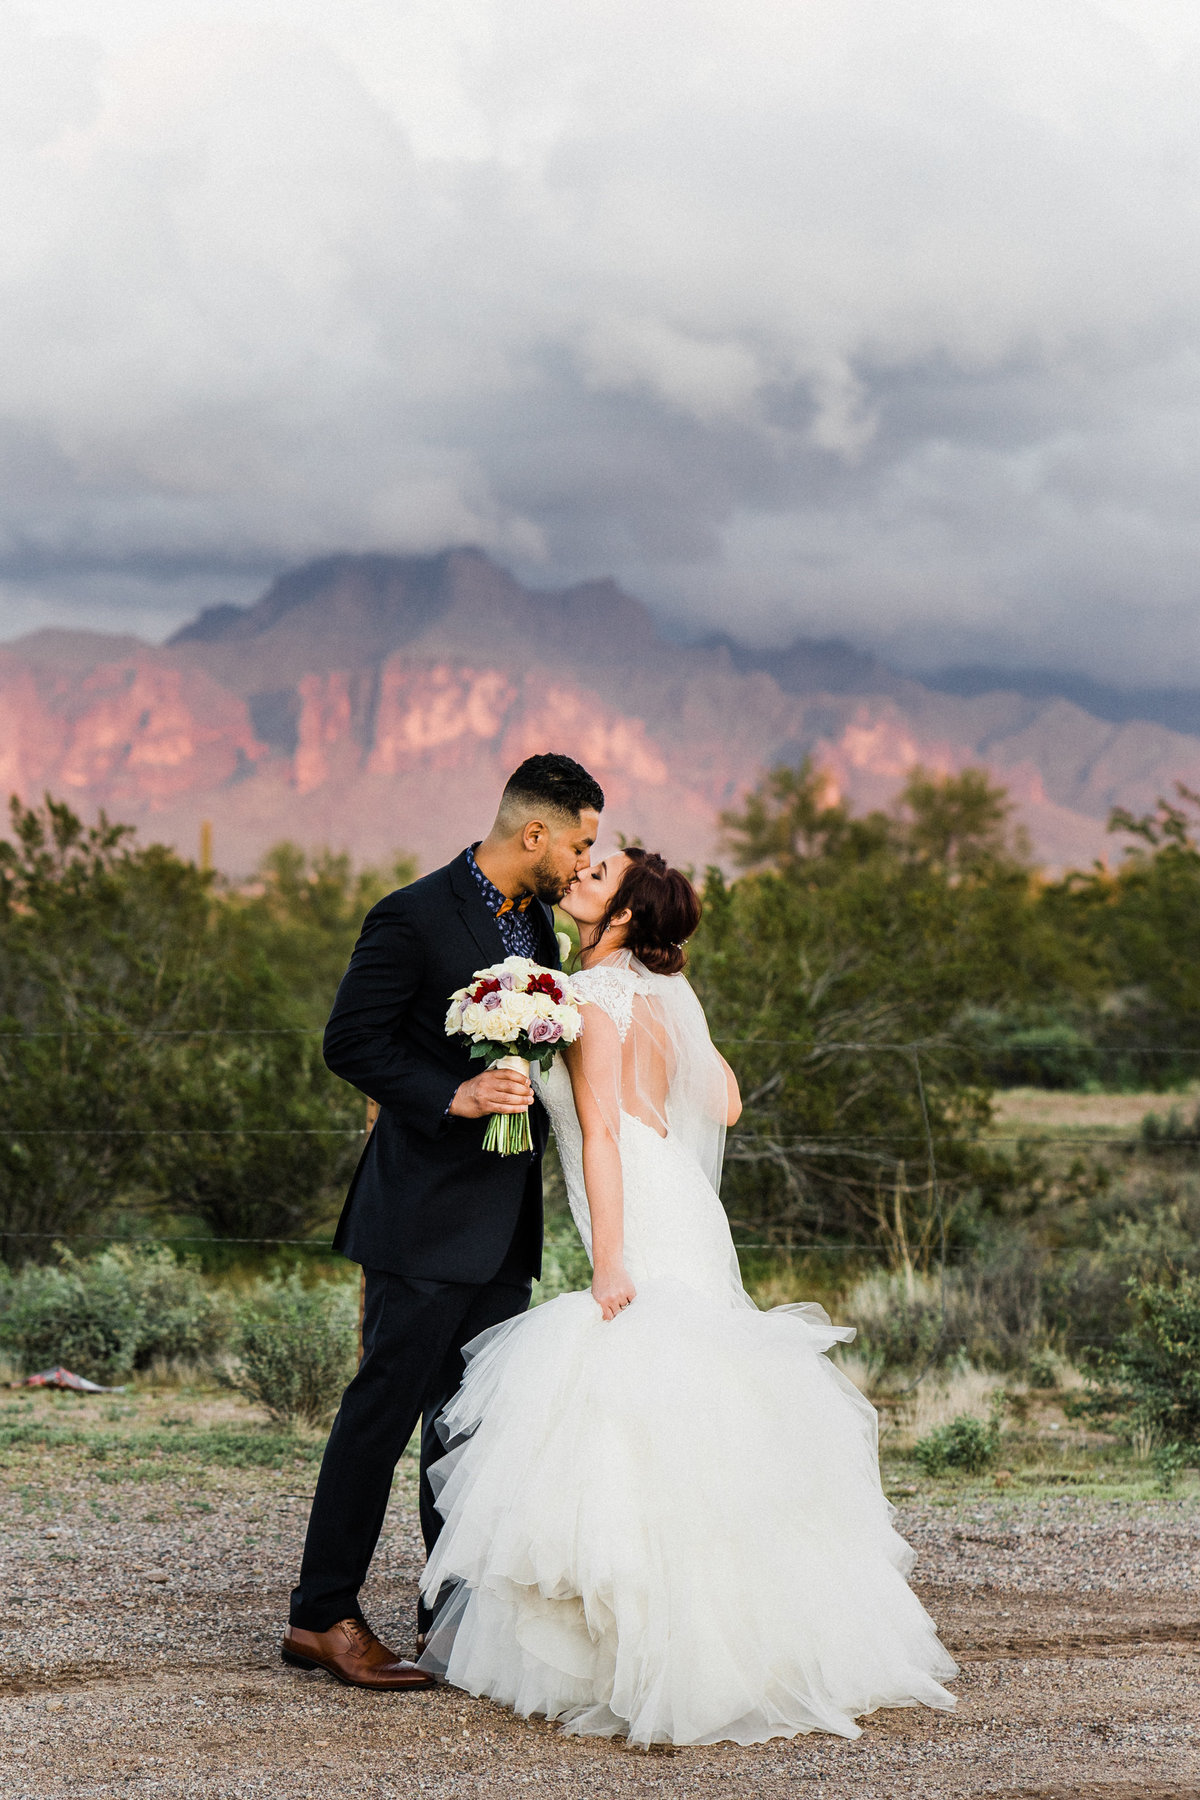 Arizona Wedding At Superstition Manor During Monsoon - Atlas Rose Photography AZ 01